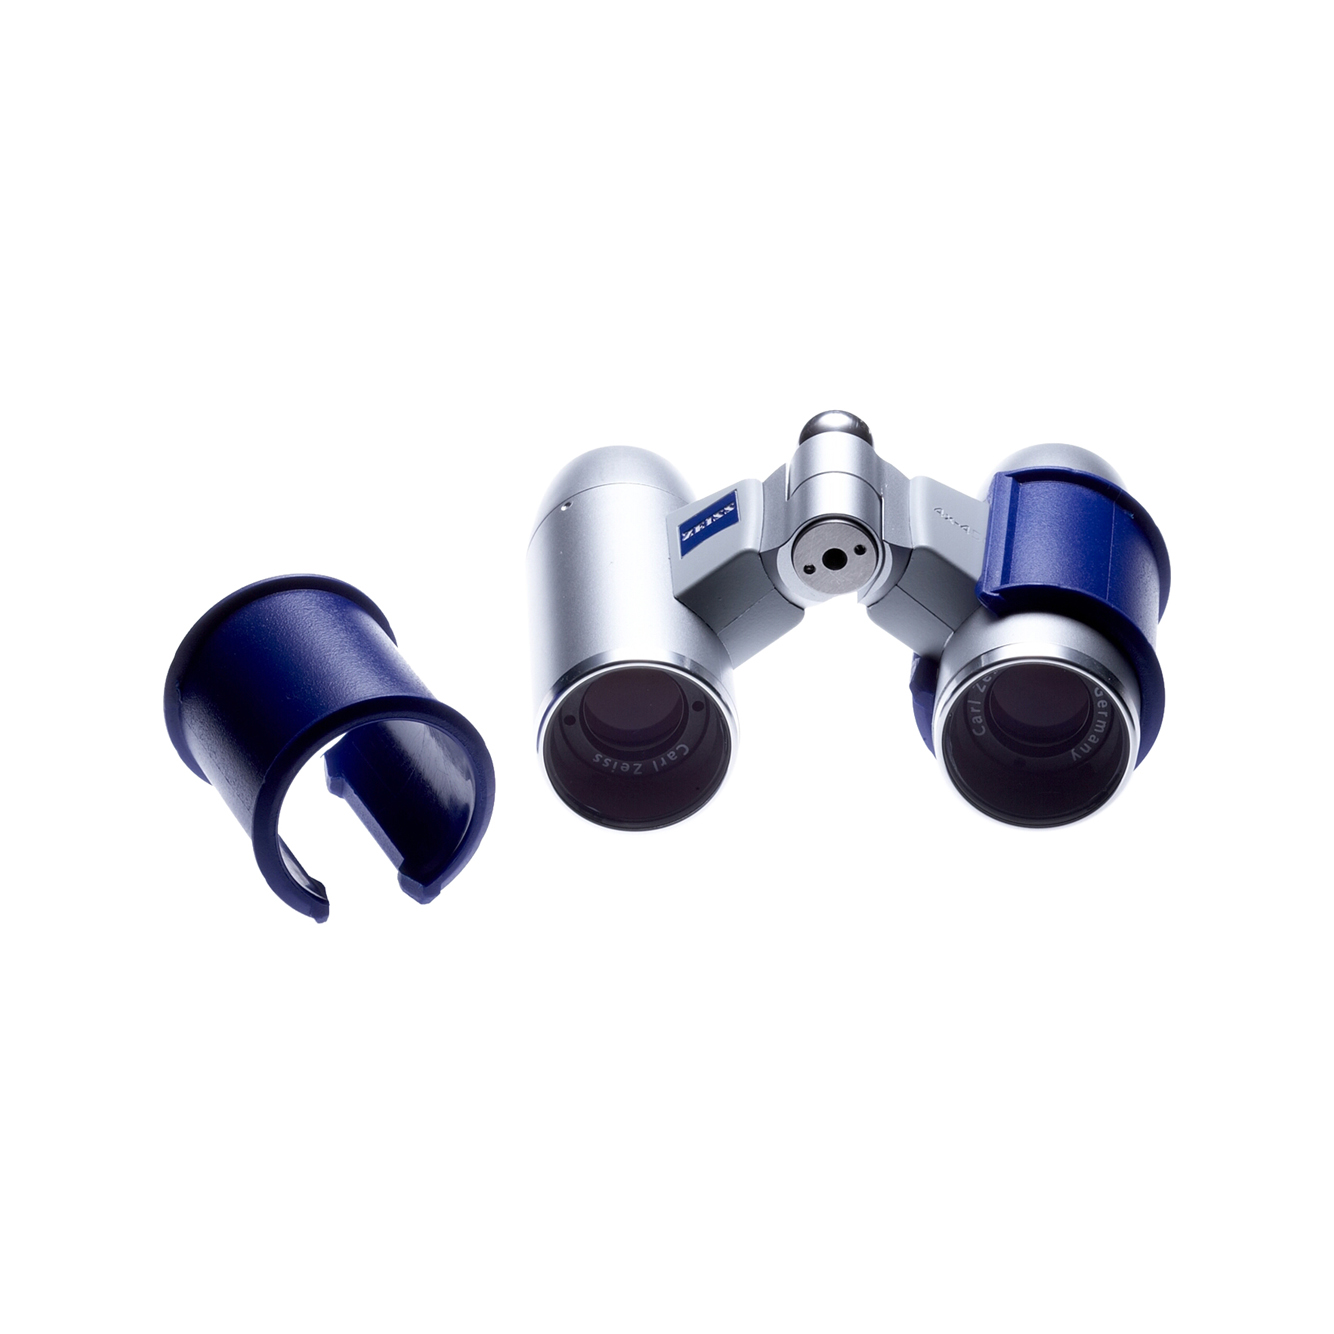 Contact guards for ZEISS EyeMag Pro product photo